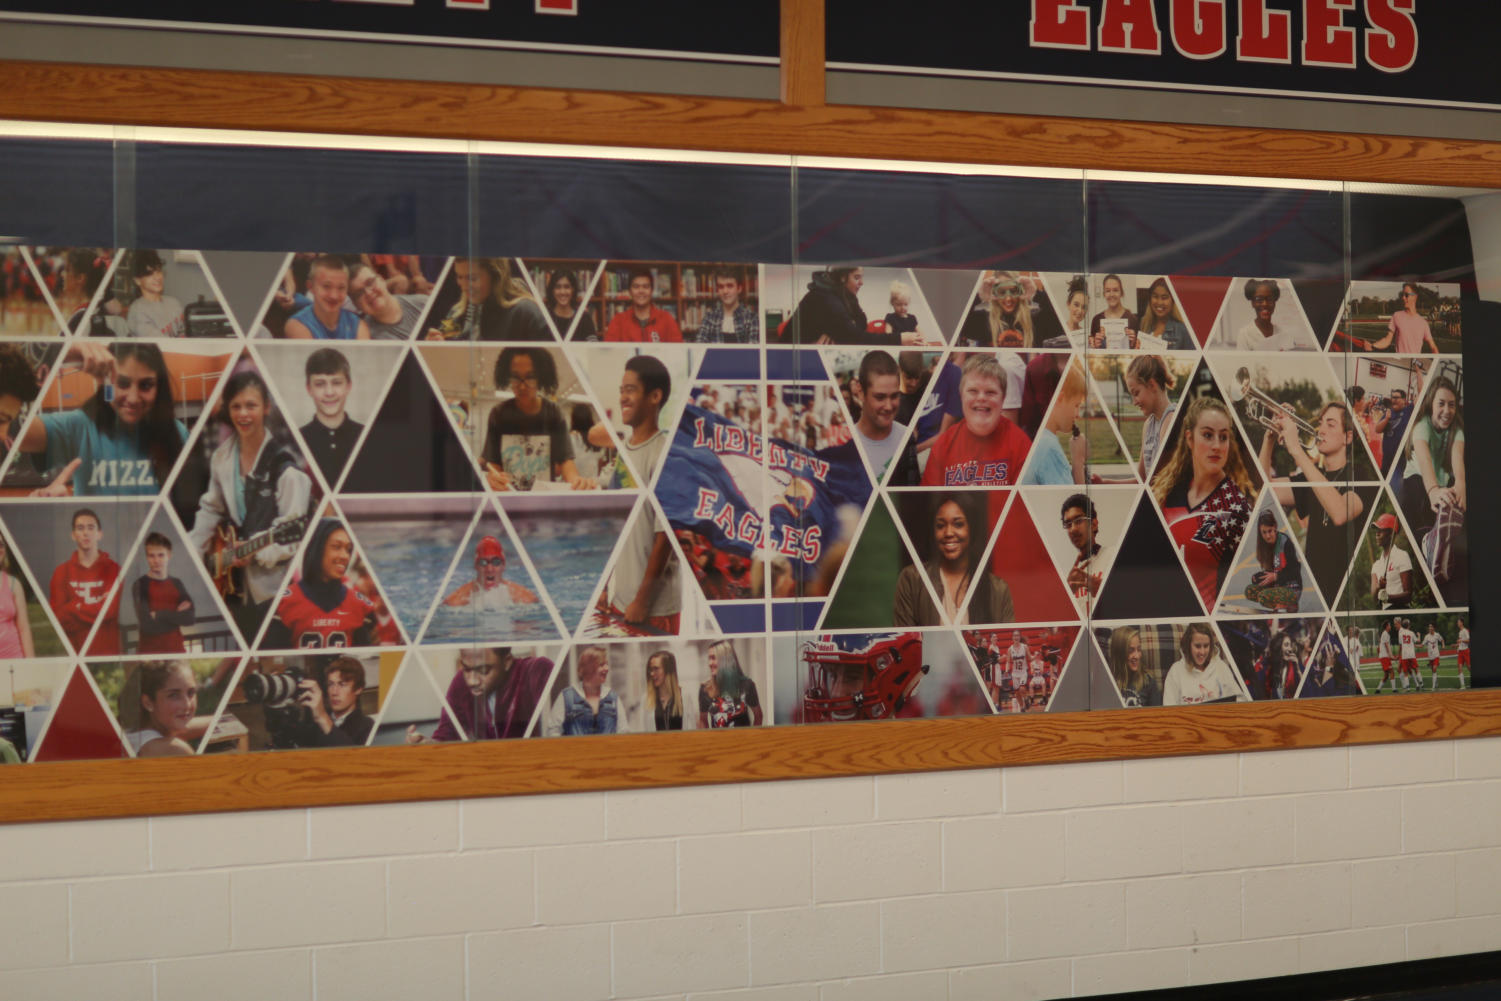 The new photo display exhibits students from various clubs and organizations.